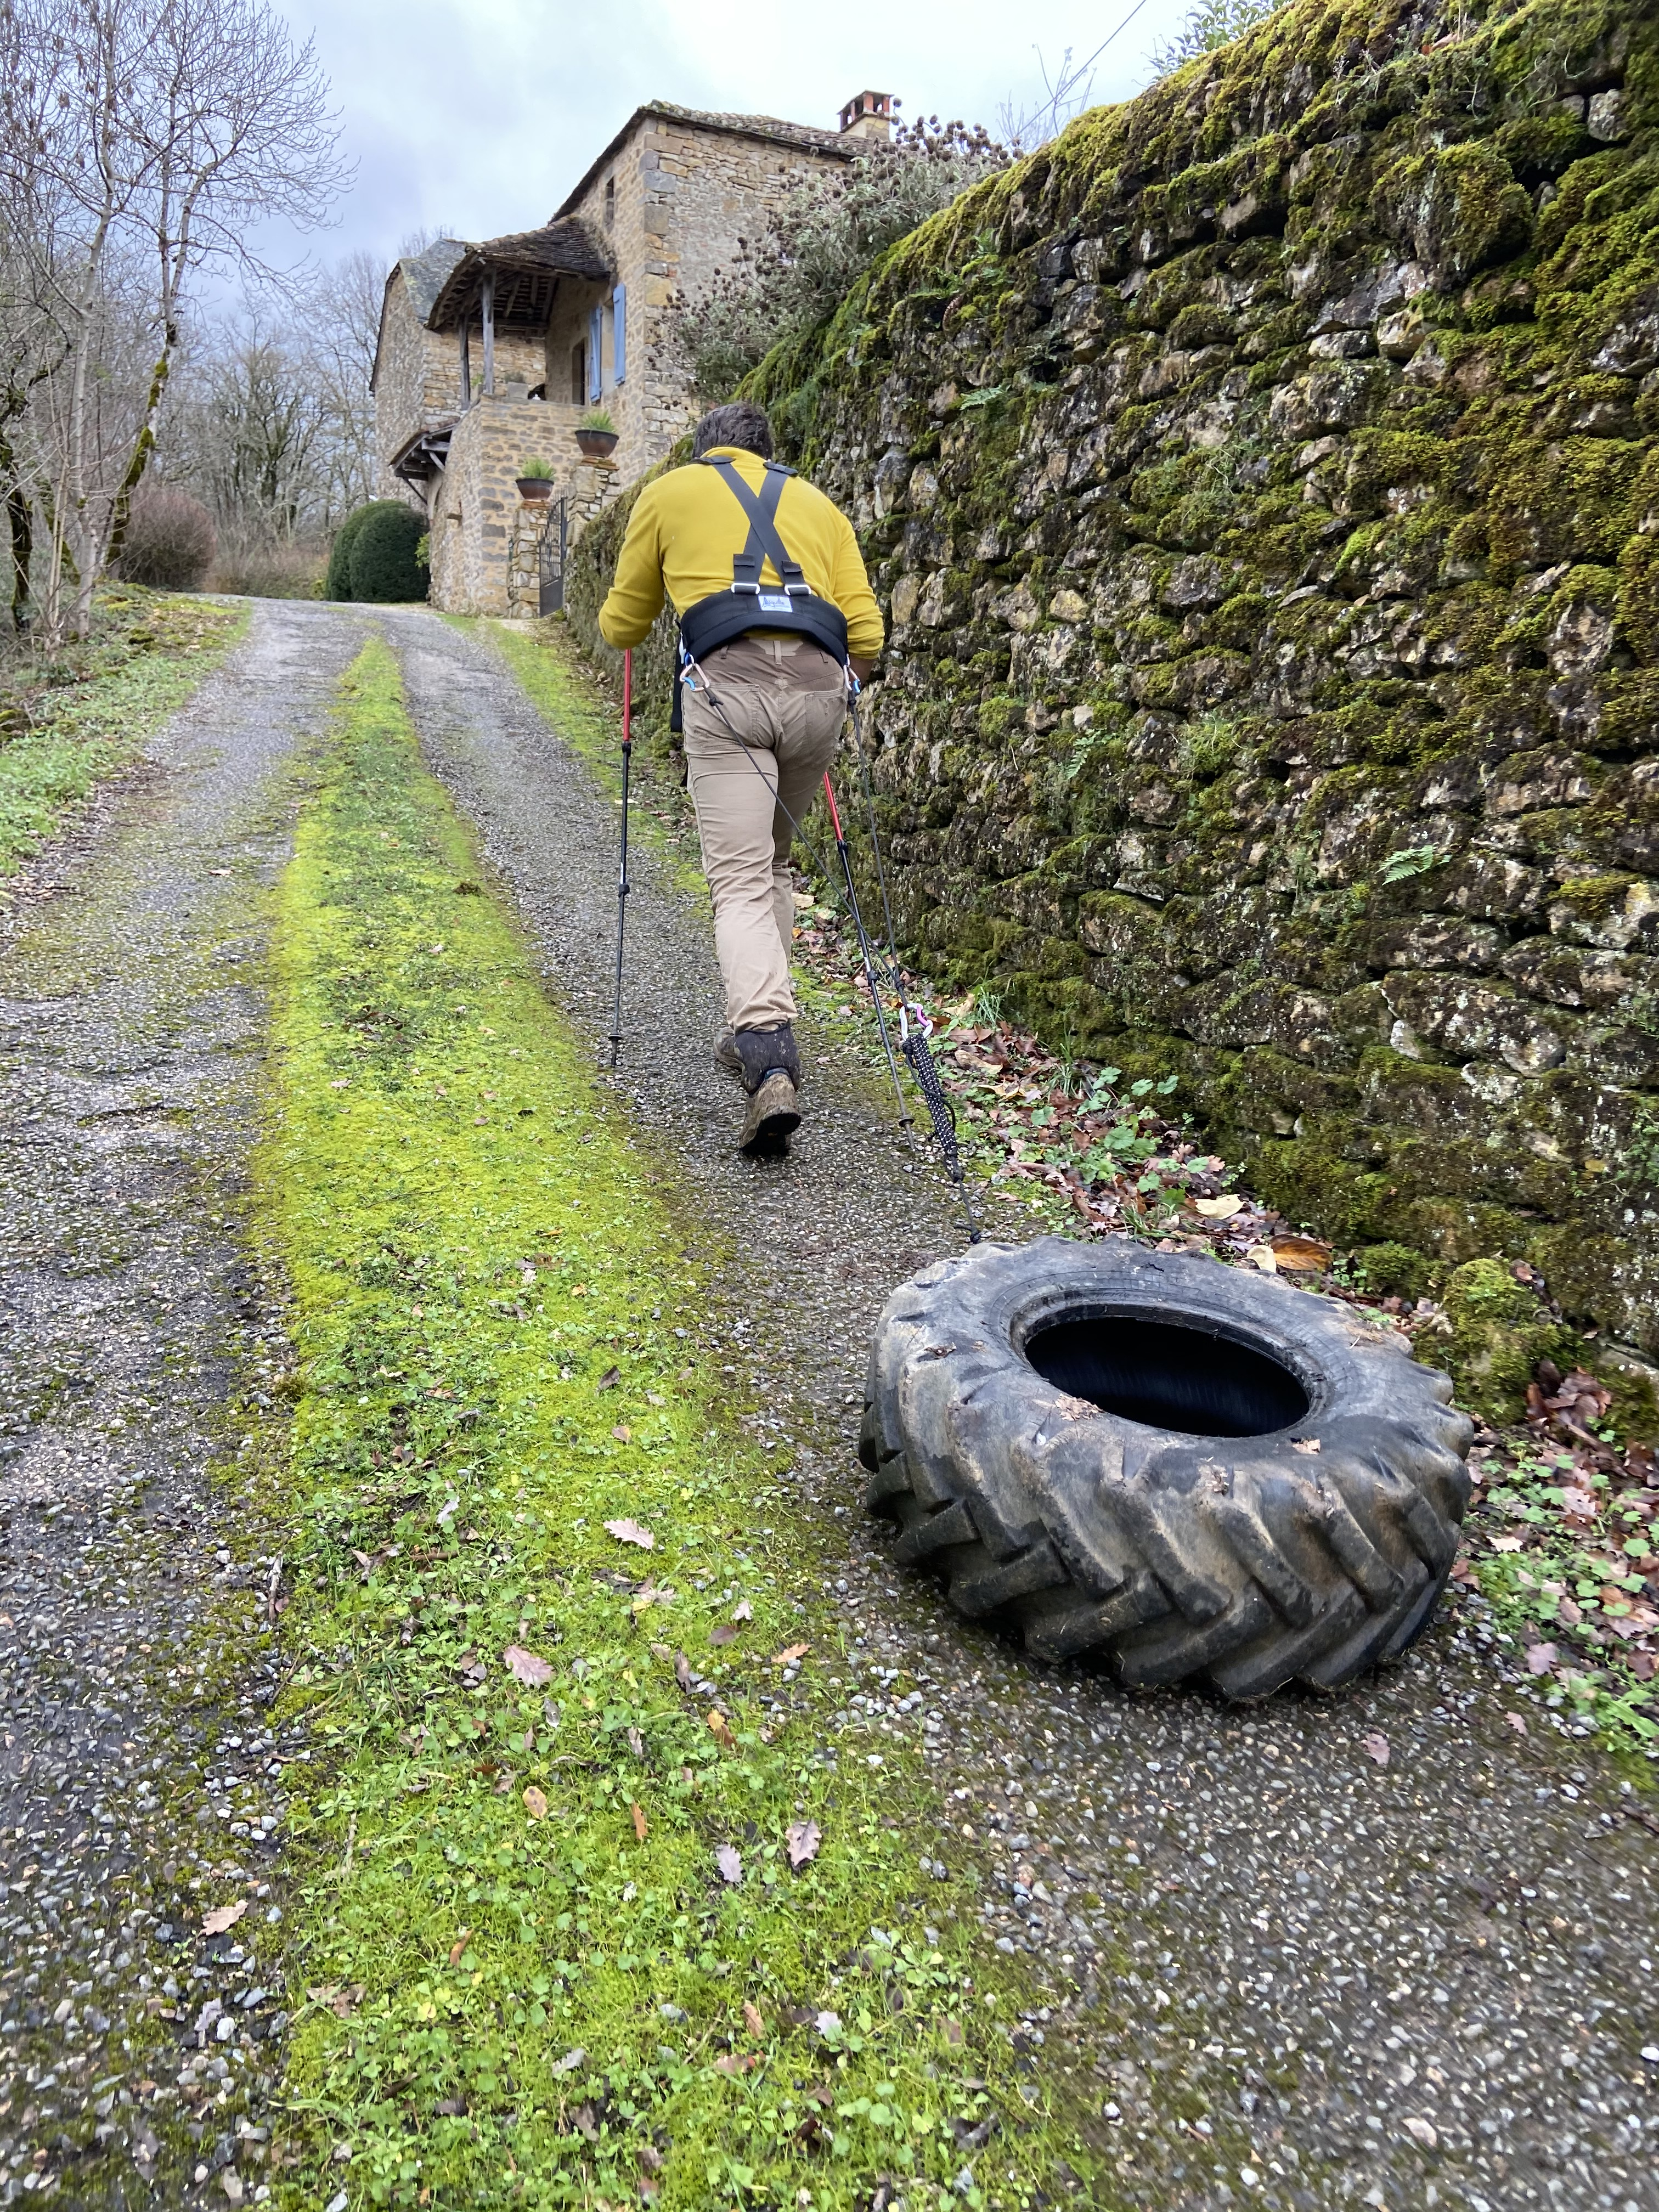 Tyre pulling in France